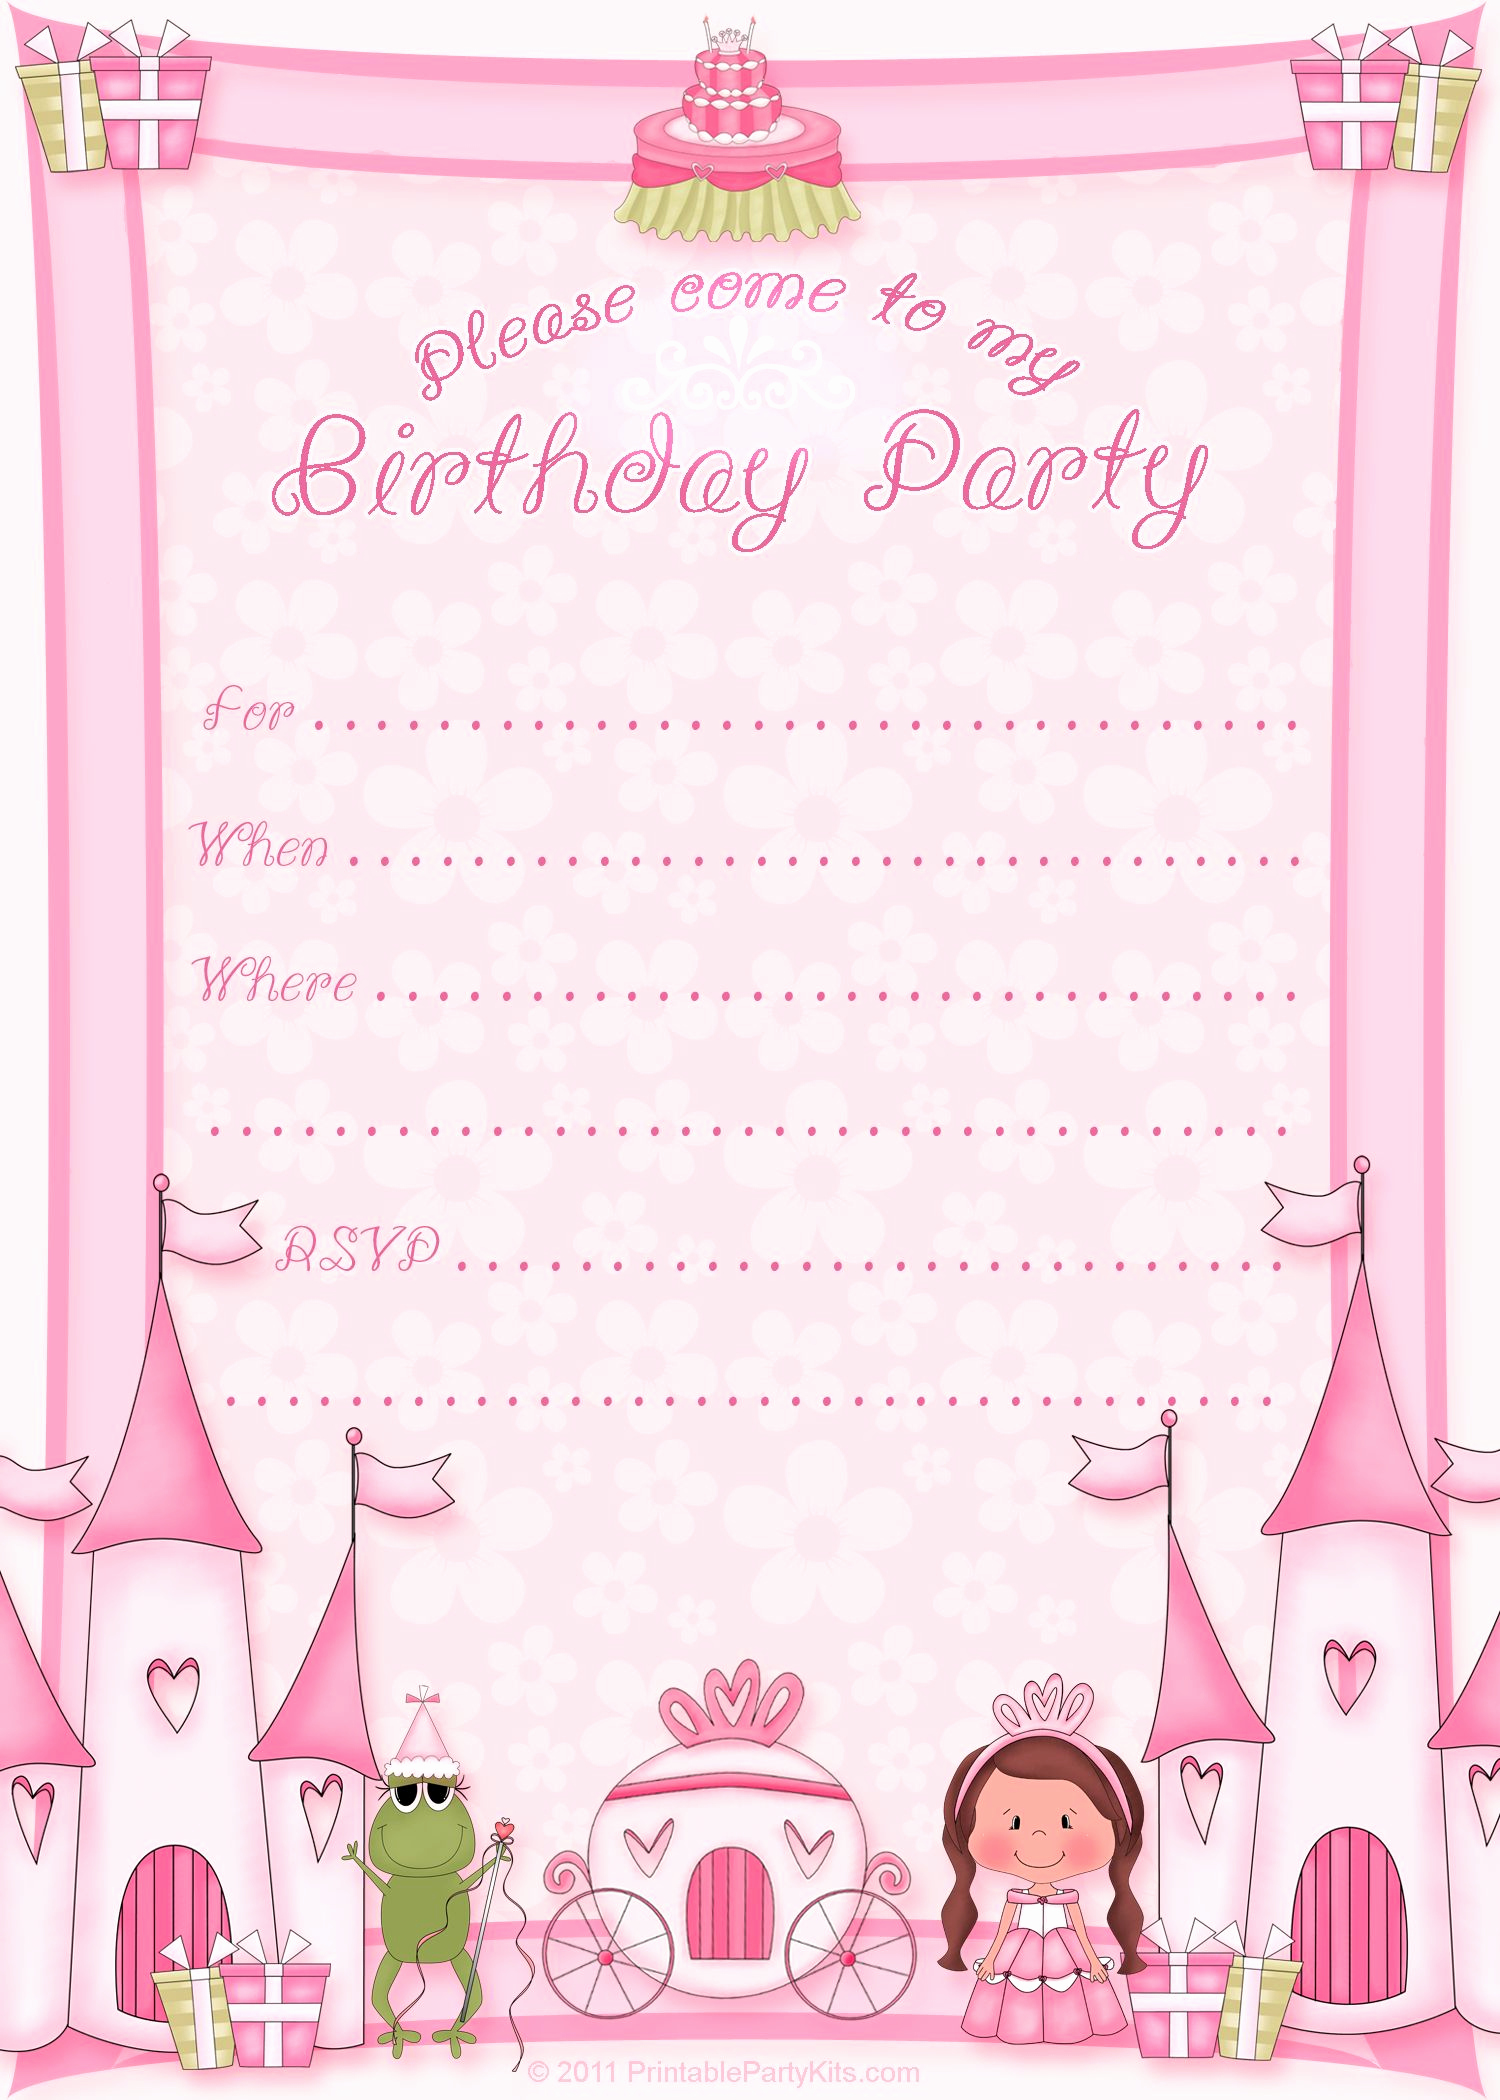 Birthday Party Invitation Template Beautiful Free Printable Invitation Pinned for Kidfolio the